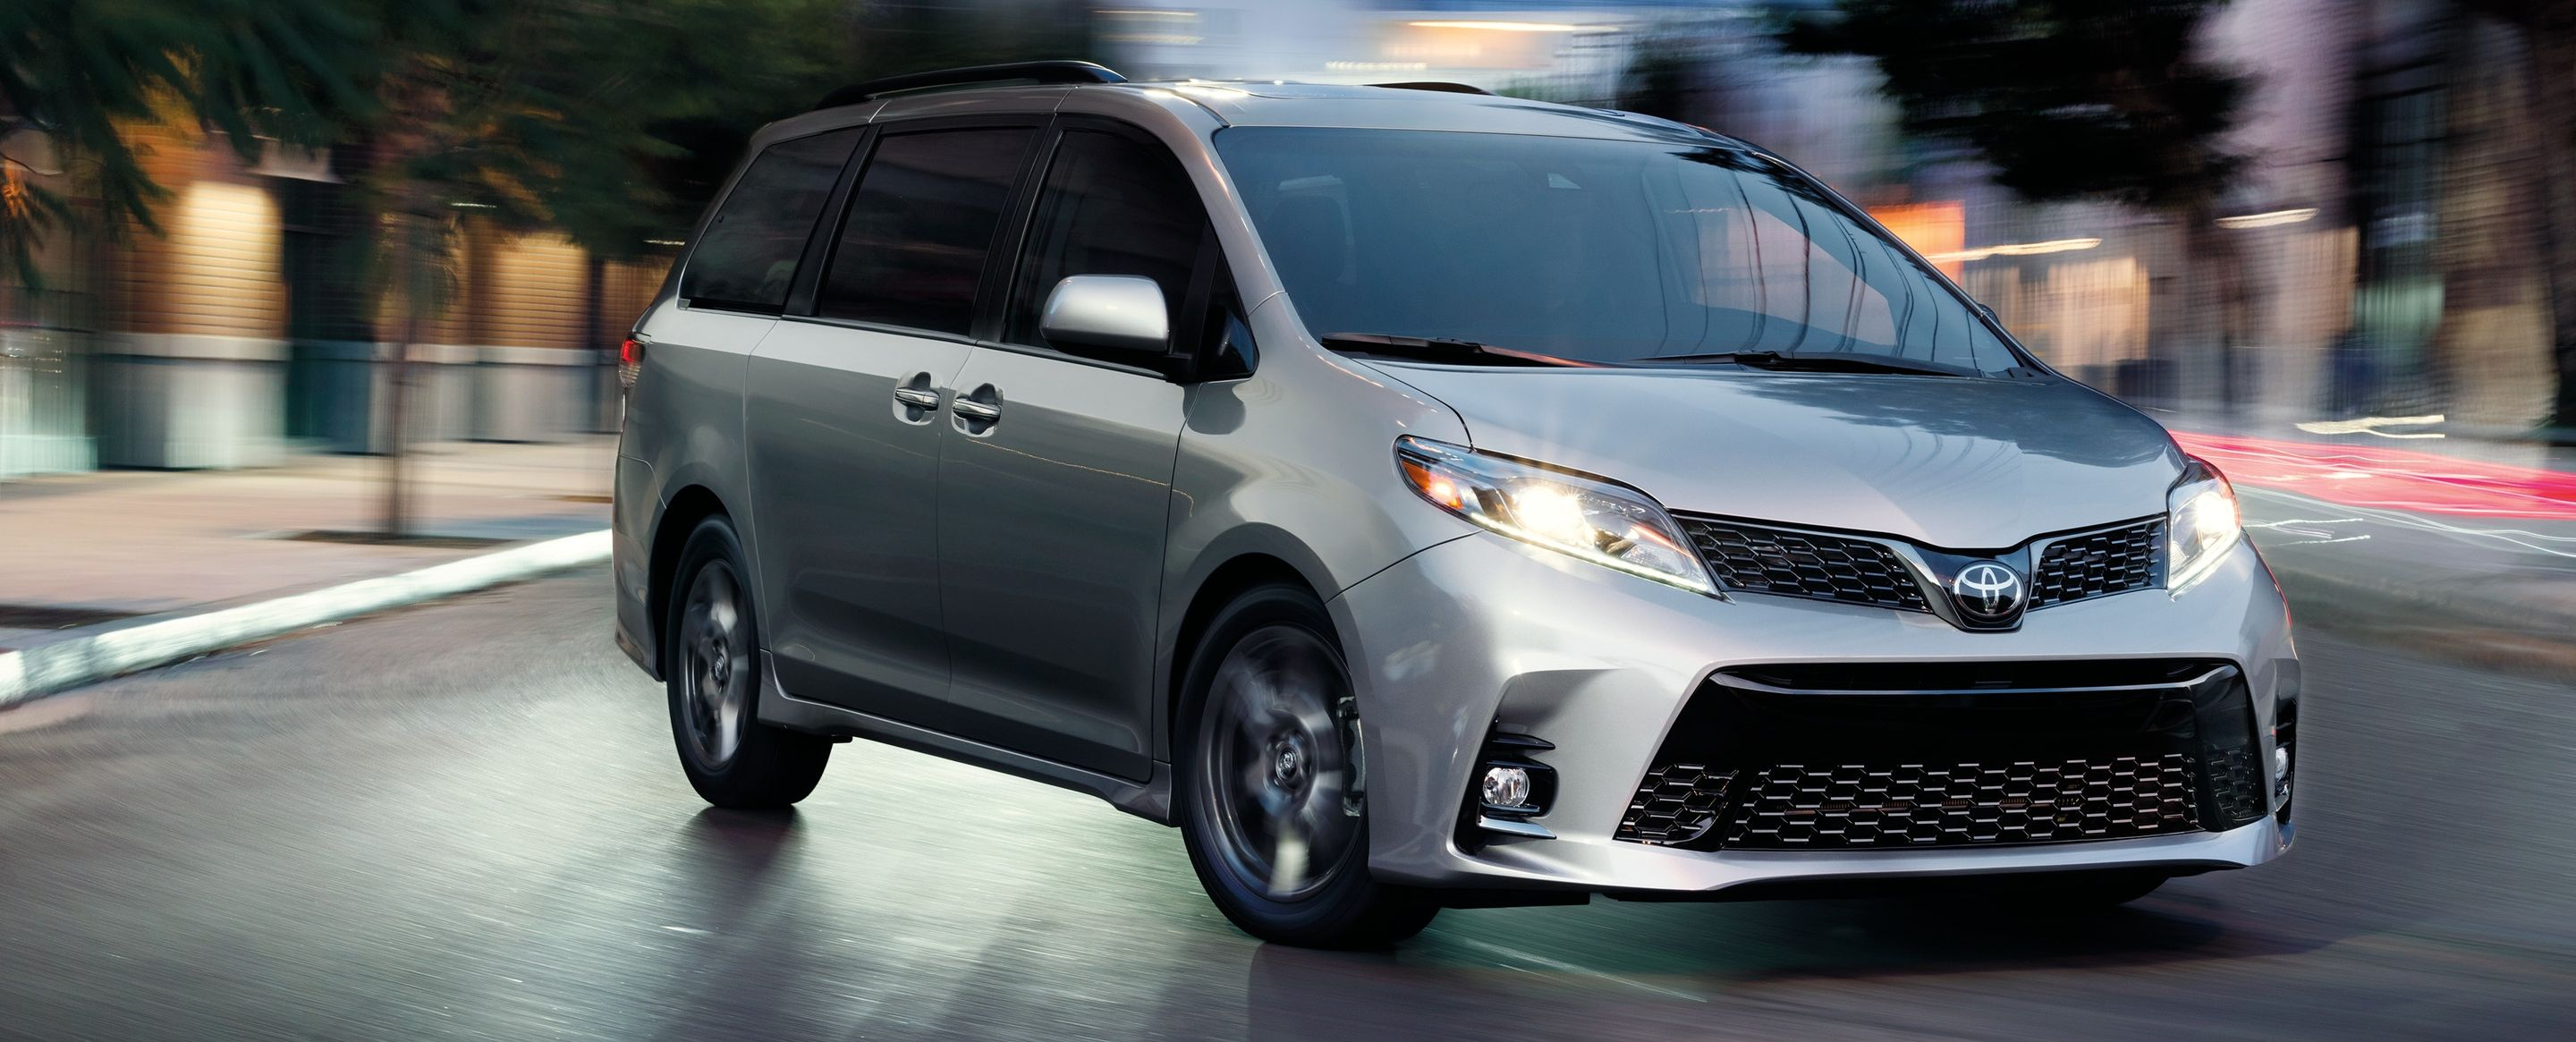 2019 Toyota Sienna Leasing near Des Moines, IA